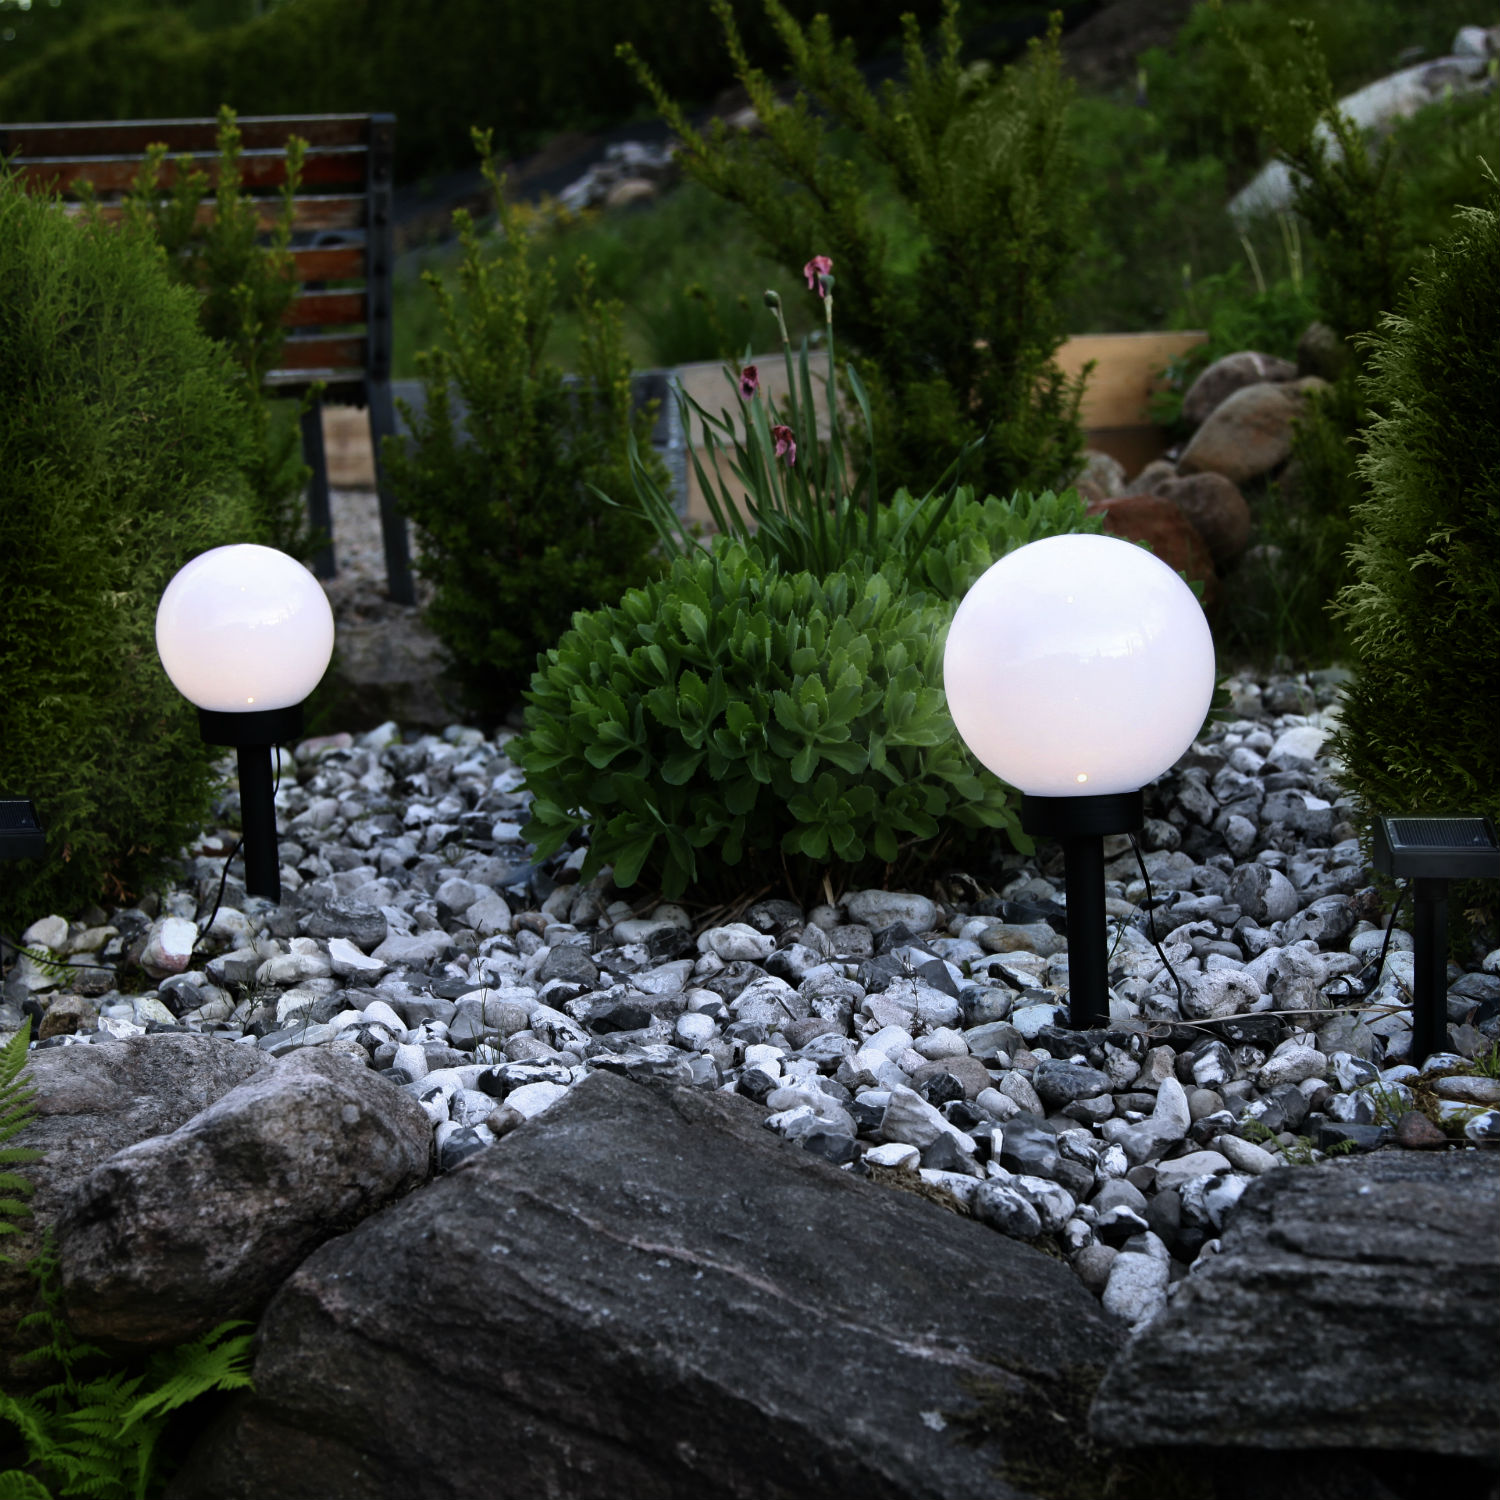 Awesome eclairage exterieur lampe jardin photos design for Lampe jardin exterieur